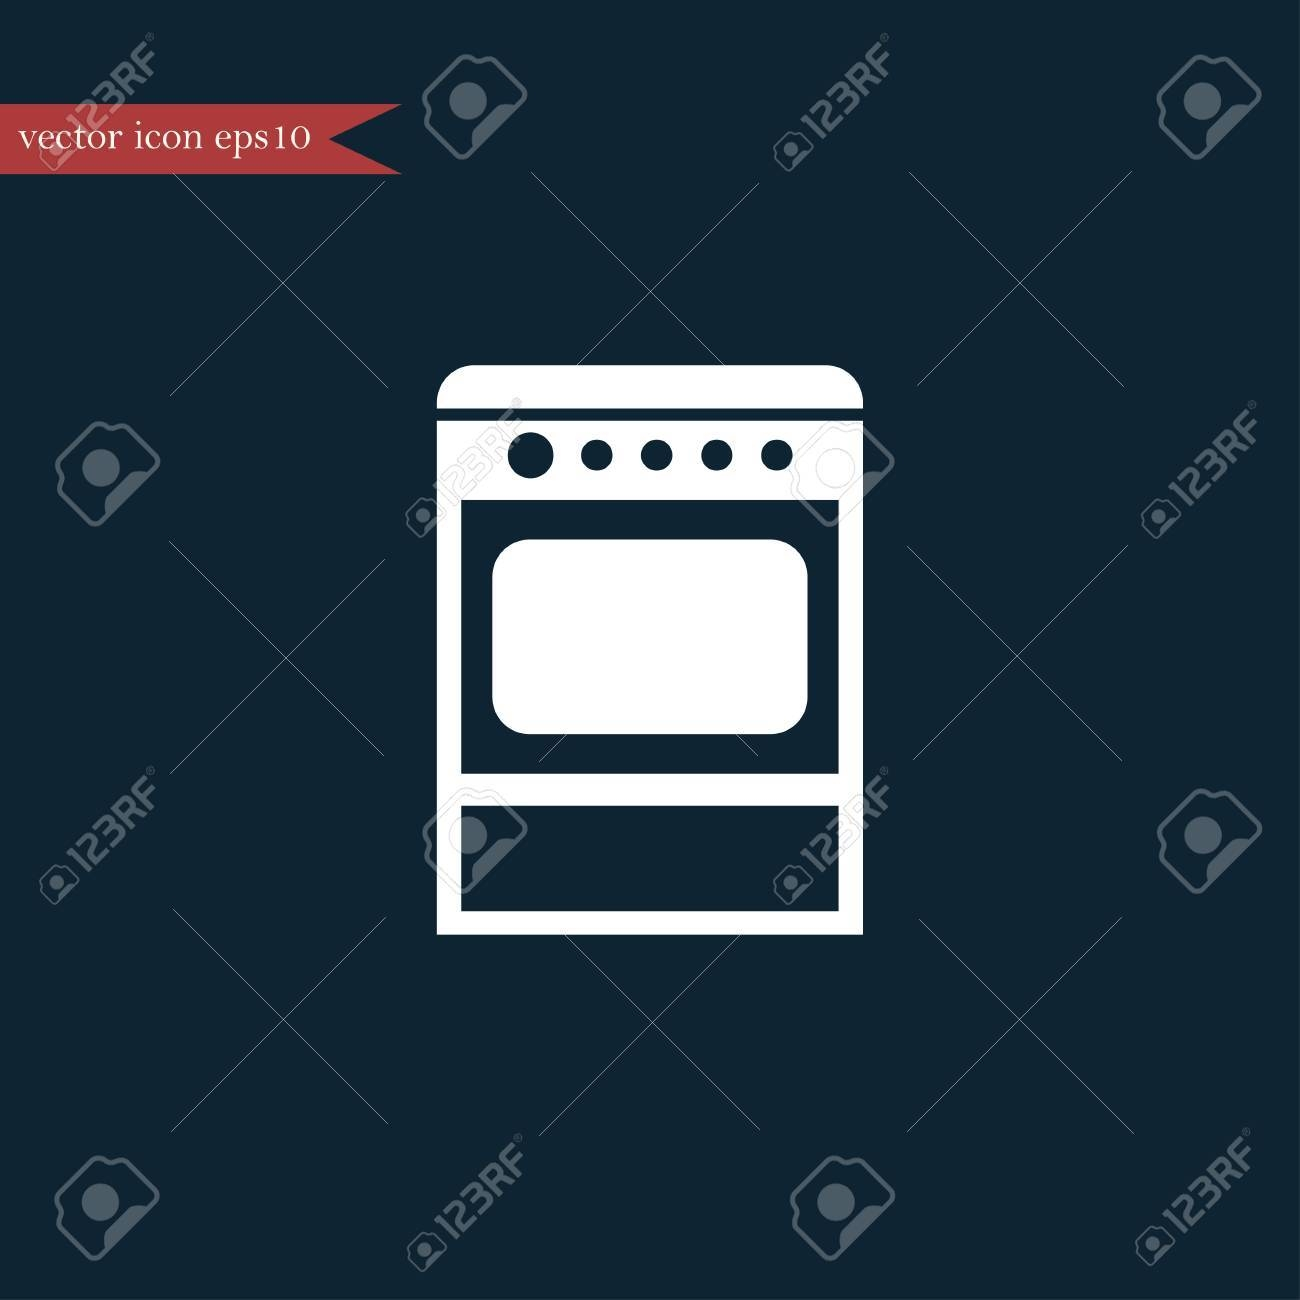 oven icon simple kitchen sign vector furniture illustration